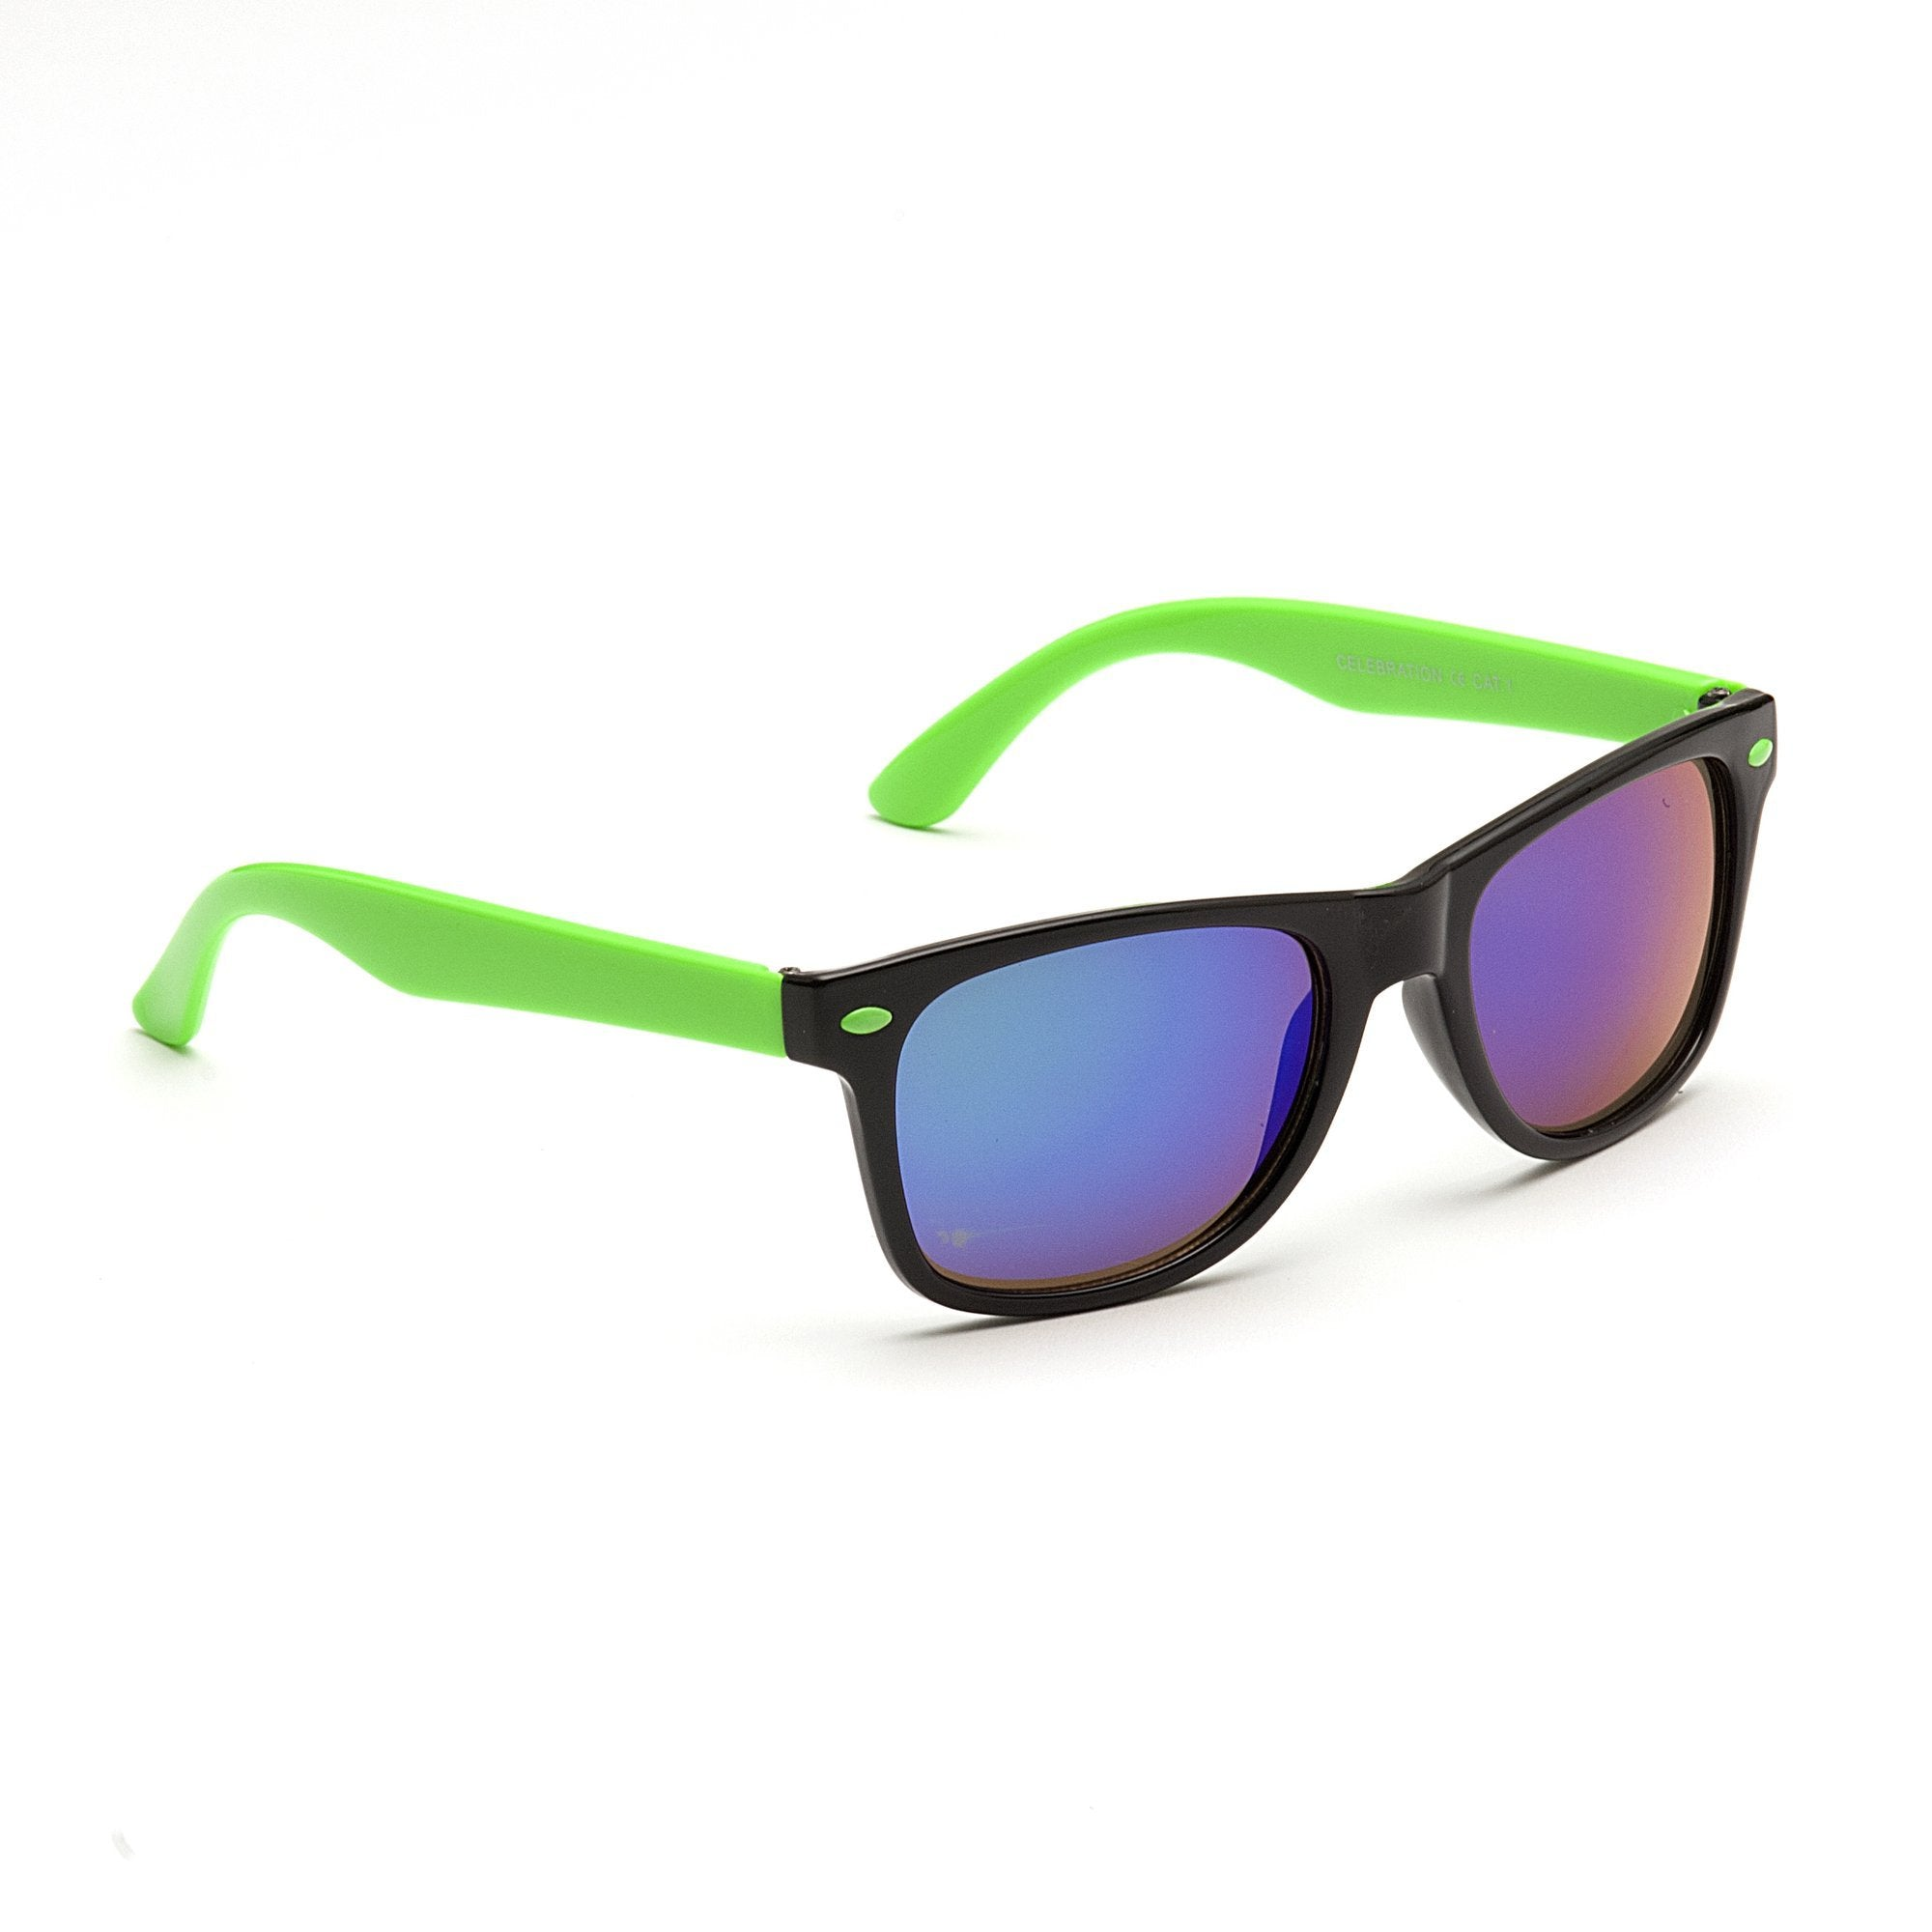 Celebrations Children's Sunglasses - Green and Black - Chic Petit